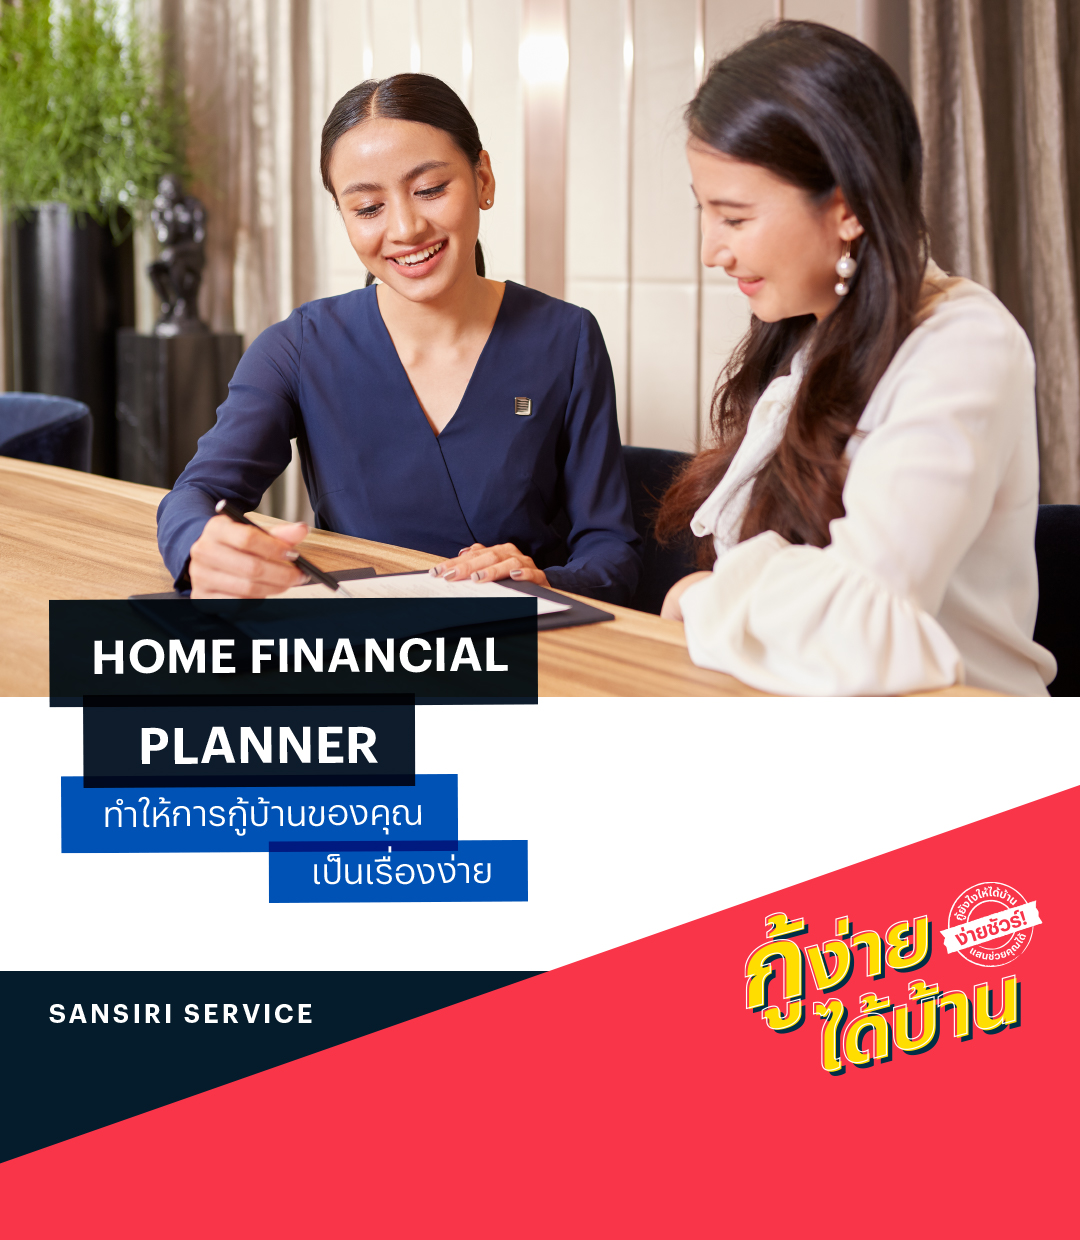 Home Financial Planner